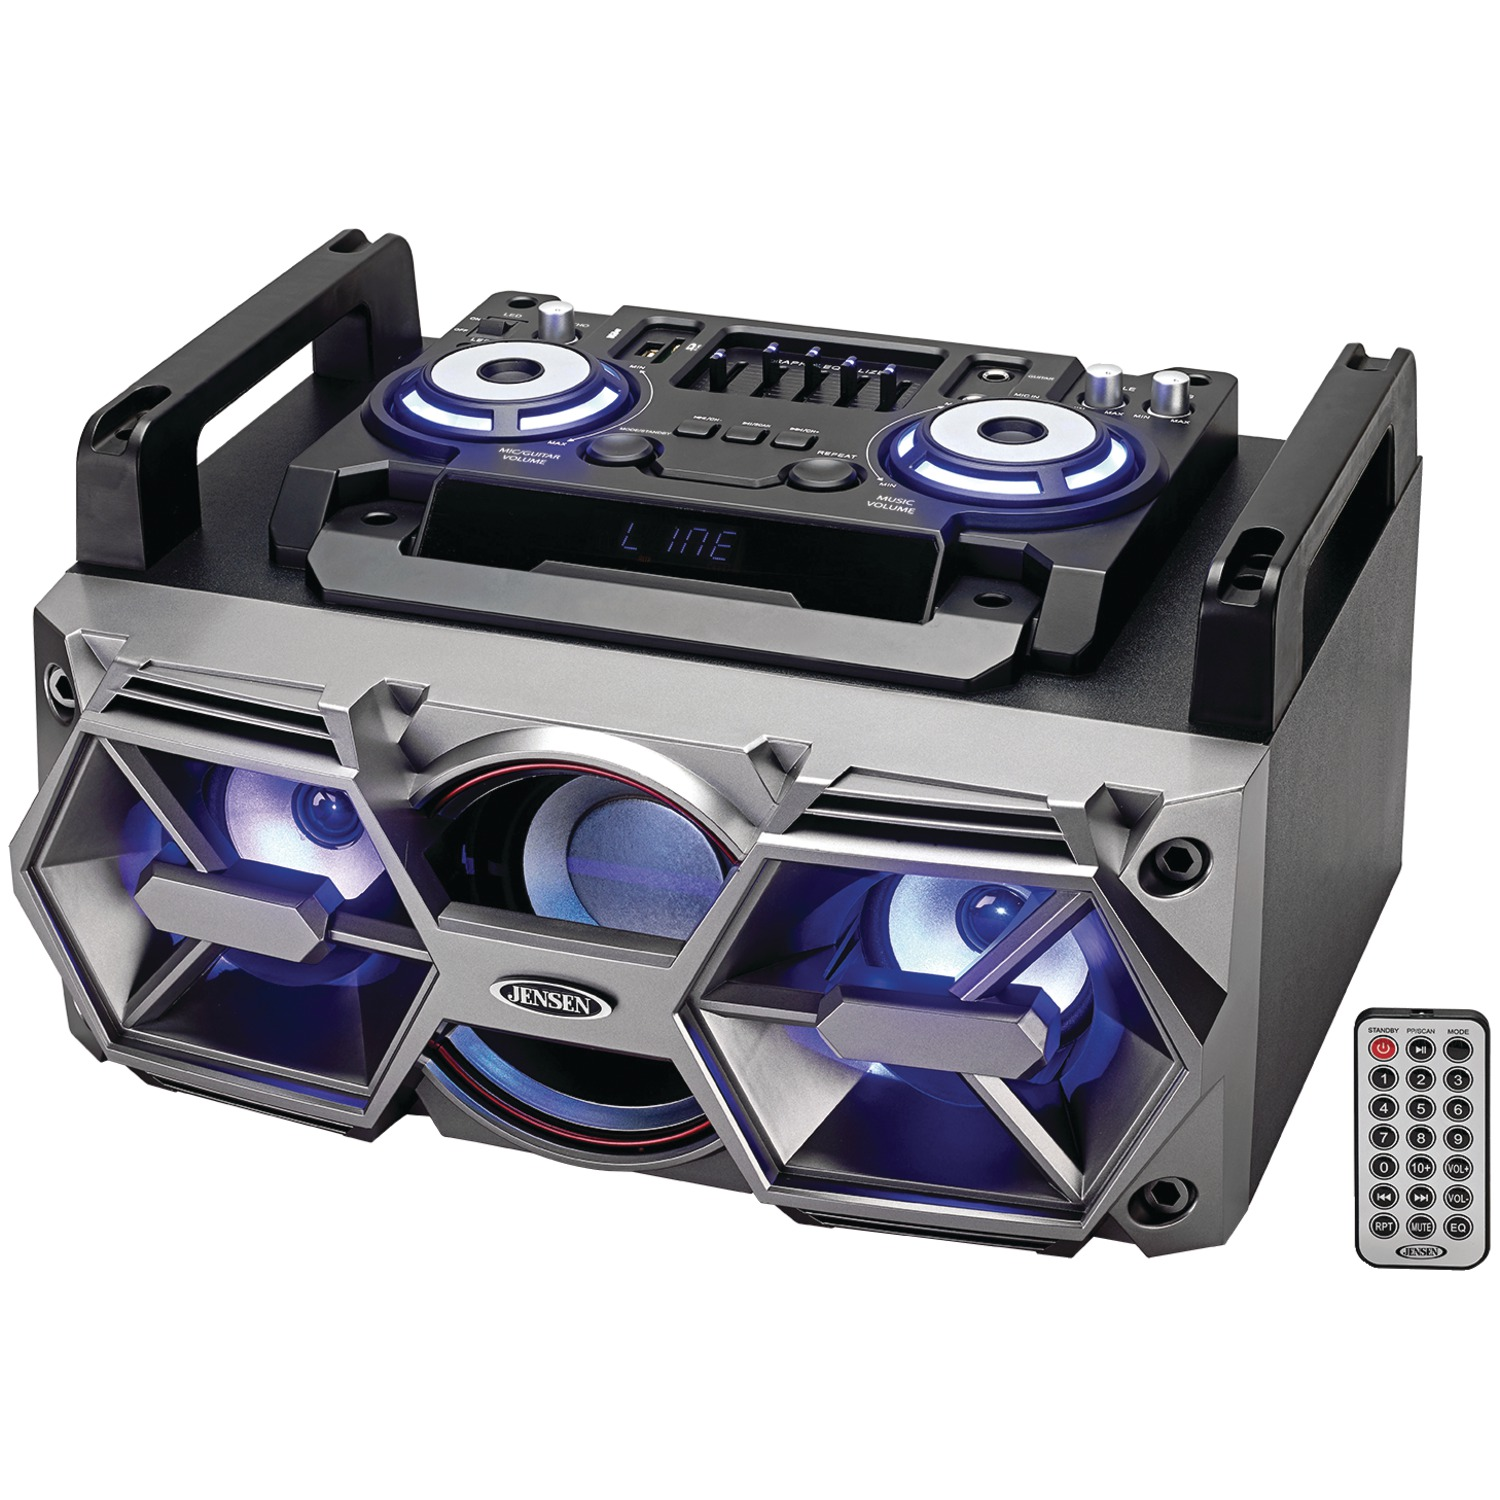 JENSEN SMPS-750 Portable Bluetooth All-in-One Hi-Fi Music System with PA